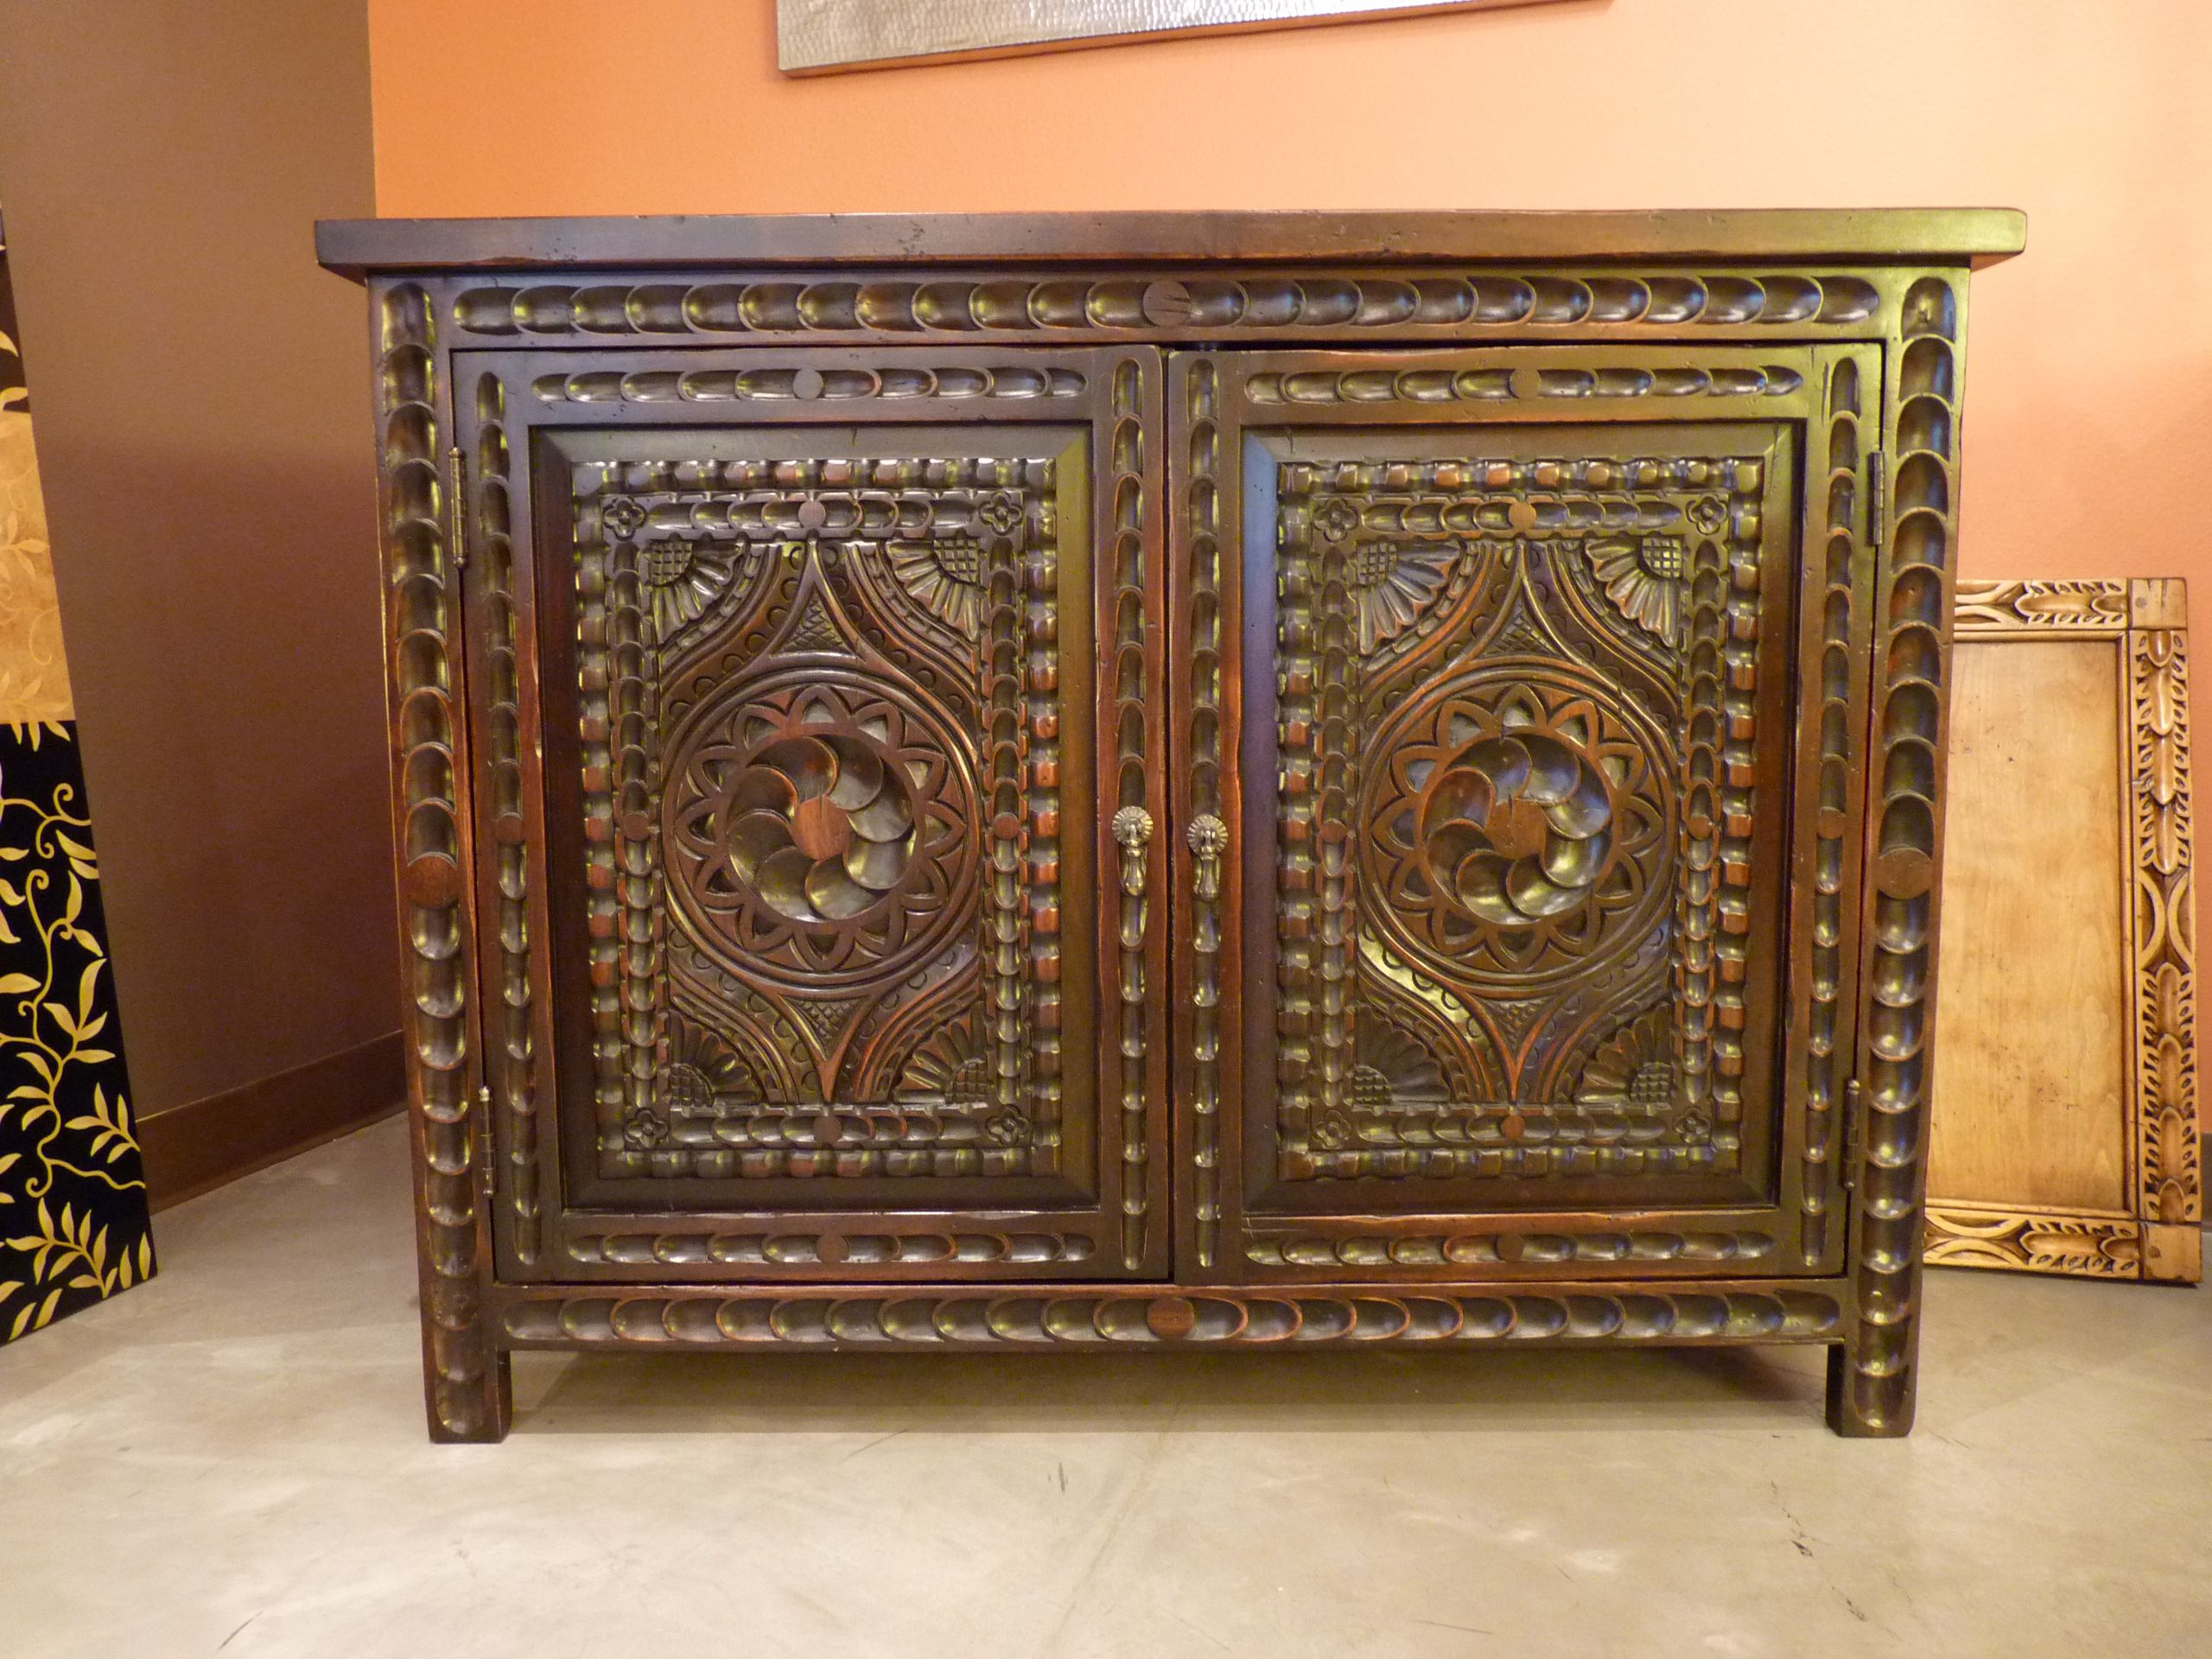 Carved Custom Cabinets Furniture/vanity. Spanish Colonial Revival Style.  Santa Fe, New